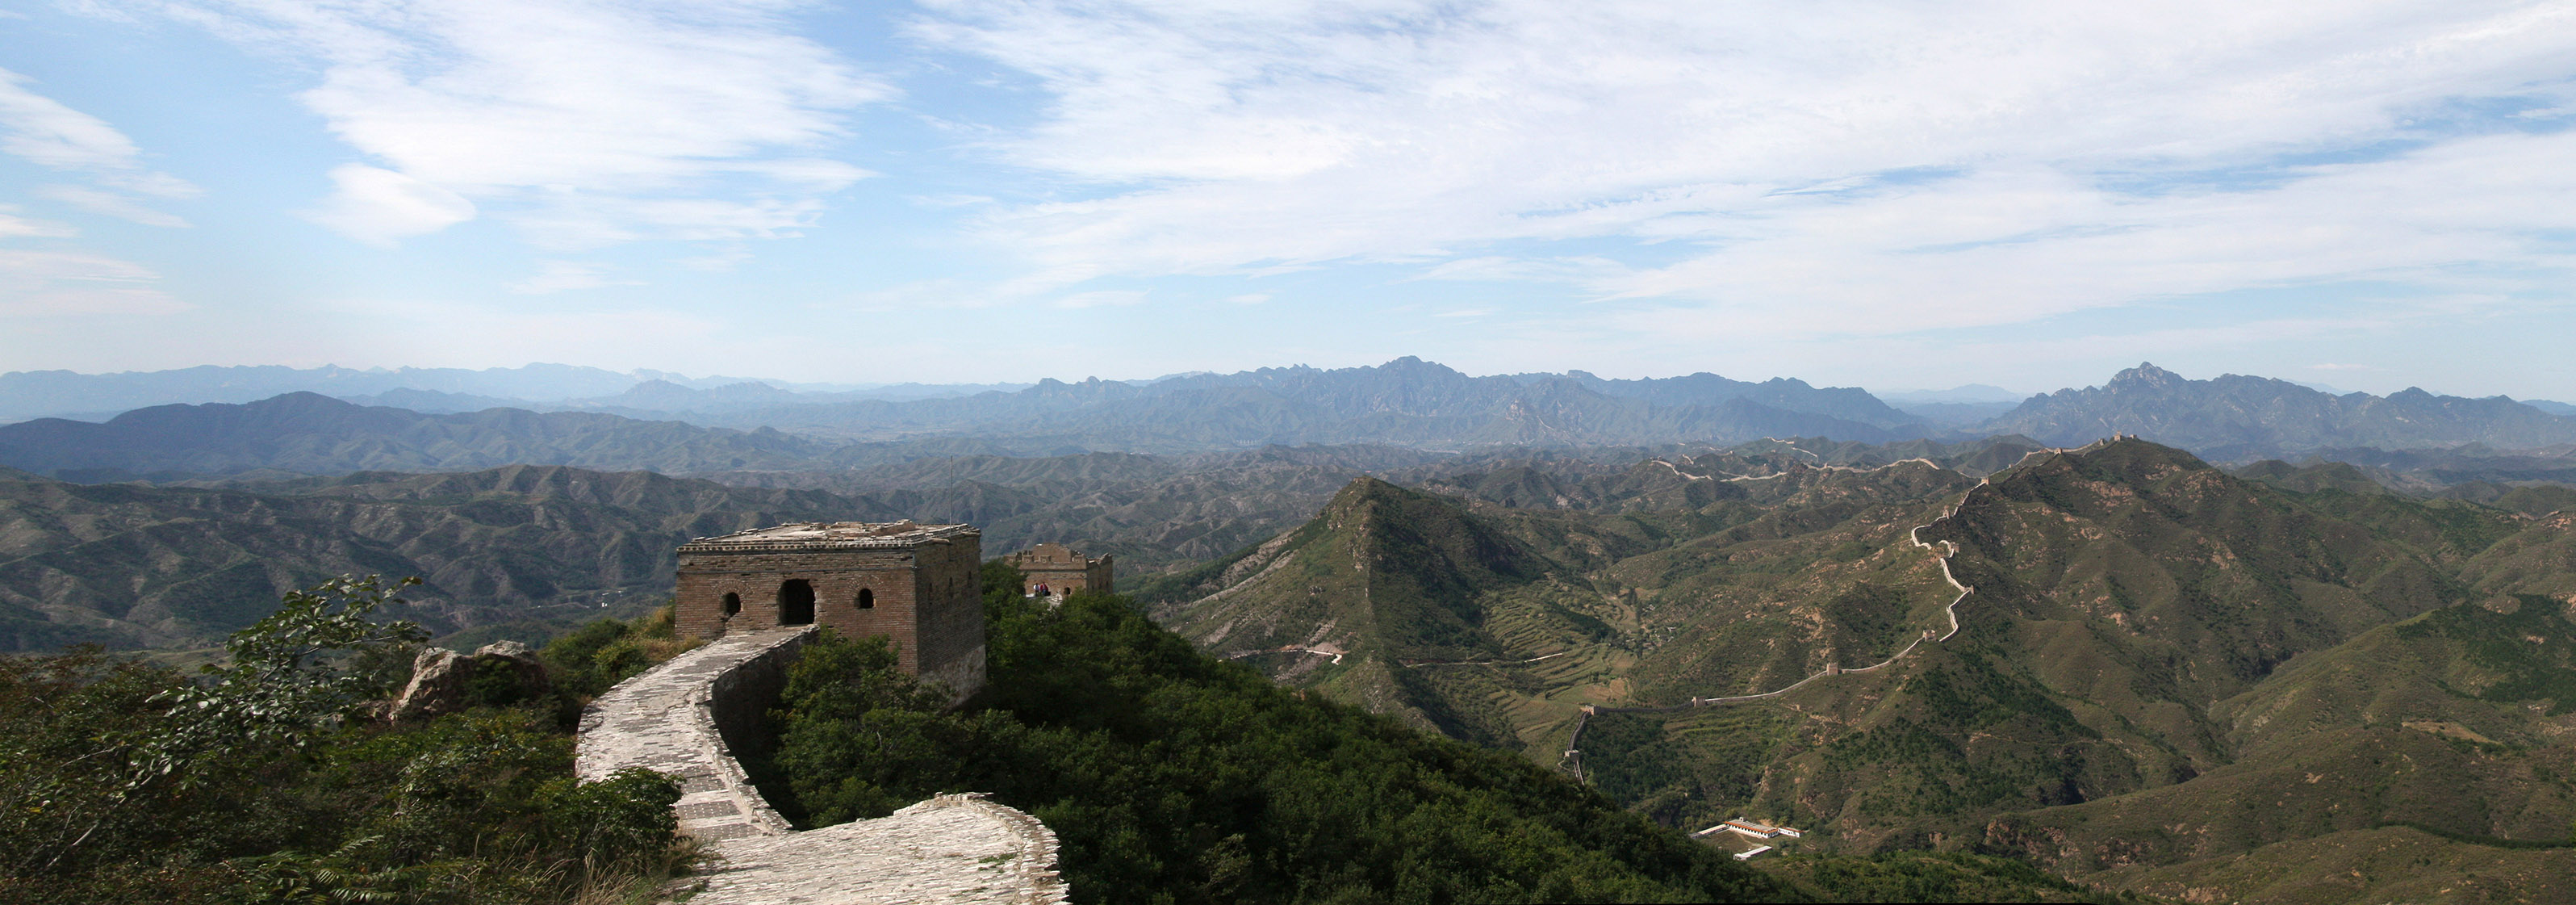 Tower_02_Pano.jpg - The Great Wall (at Simatai): A few hours later after we climed hunderts of stairs up the wall. What a beautiful view. The small line that goes endless is the wall...